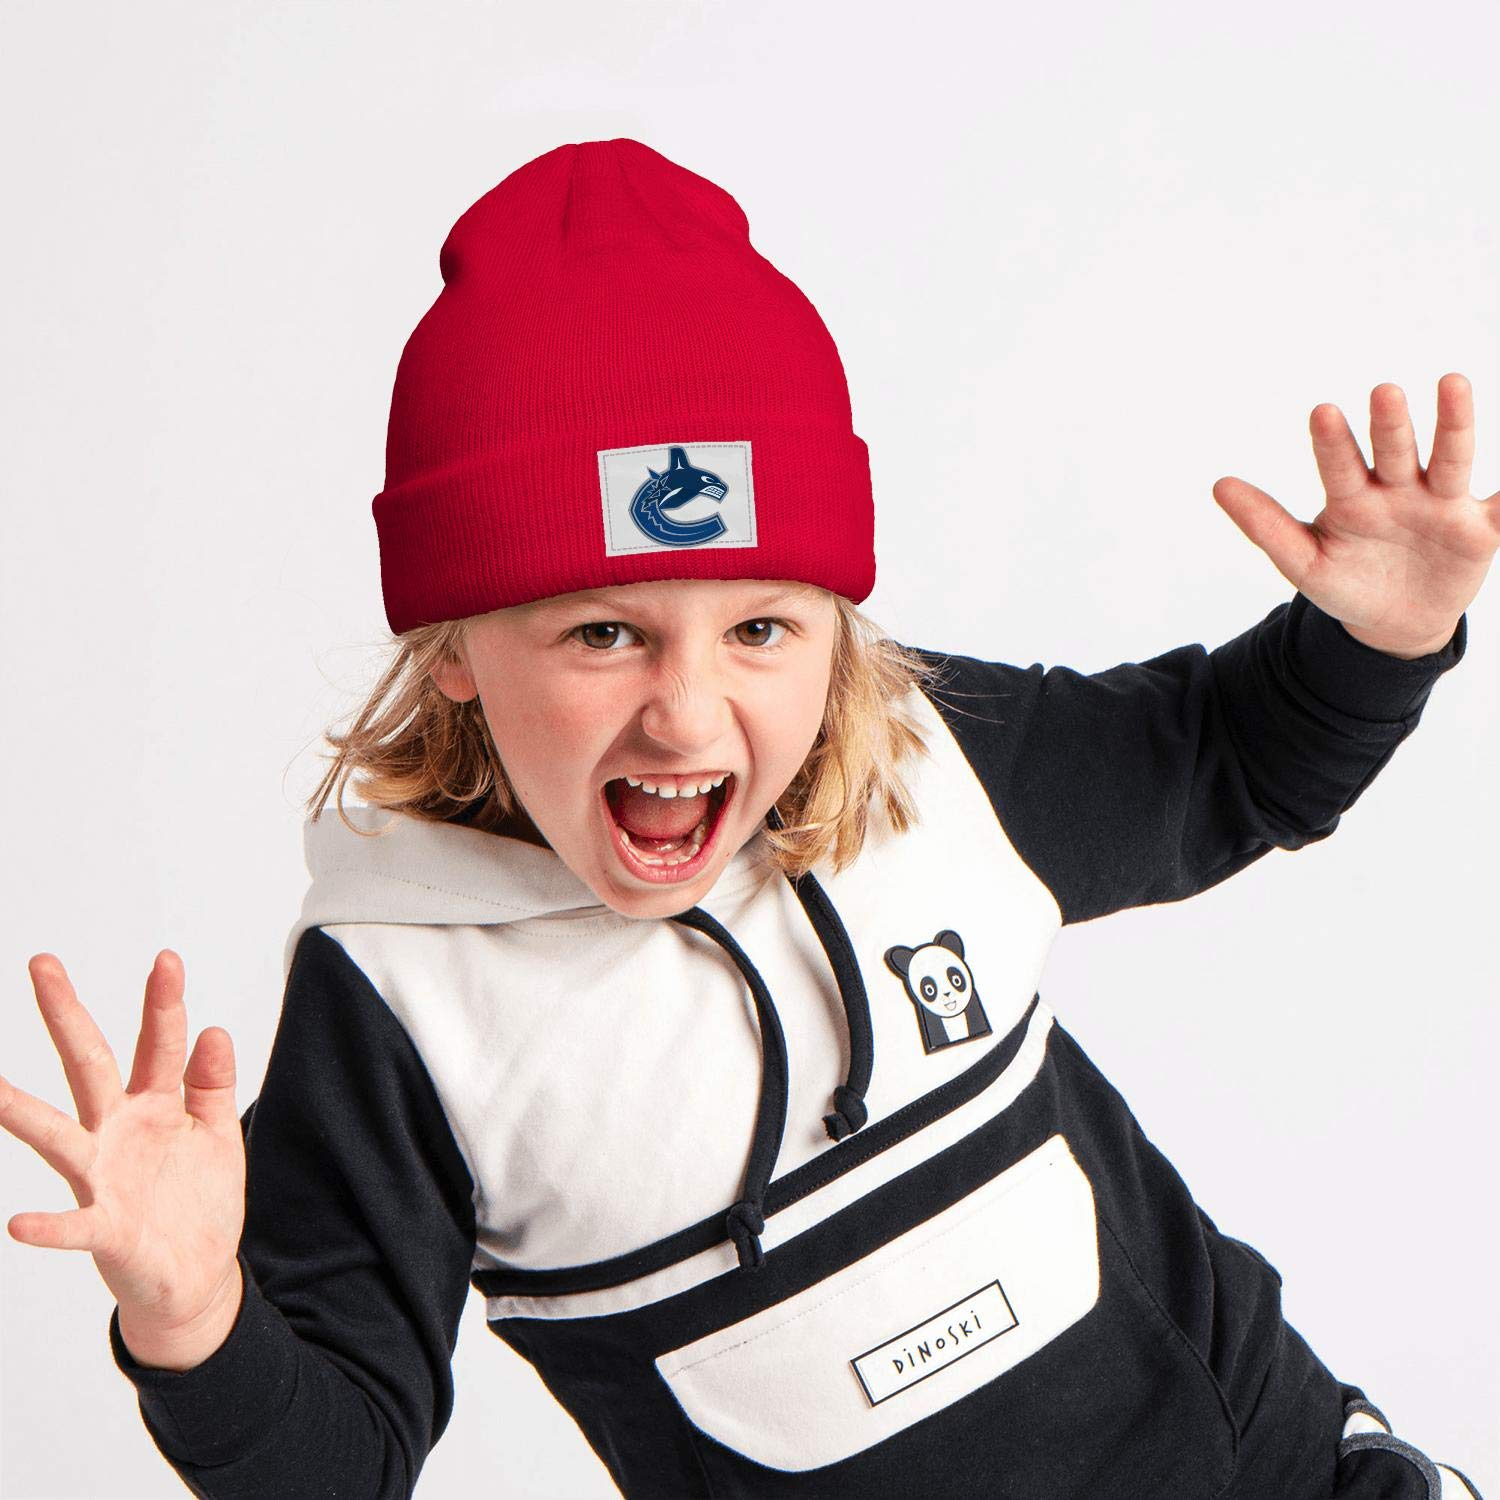 Kids Winter Knit Cap Cute Stretchy Style Red Beanie Hat for Boys Girls